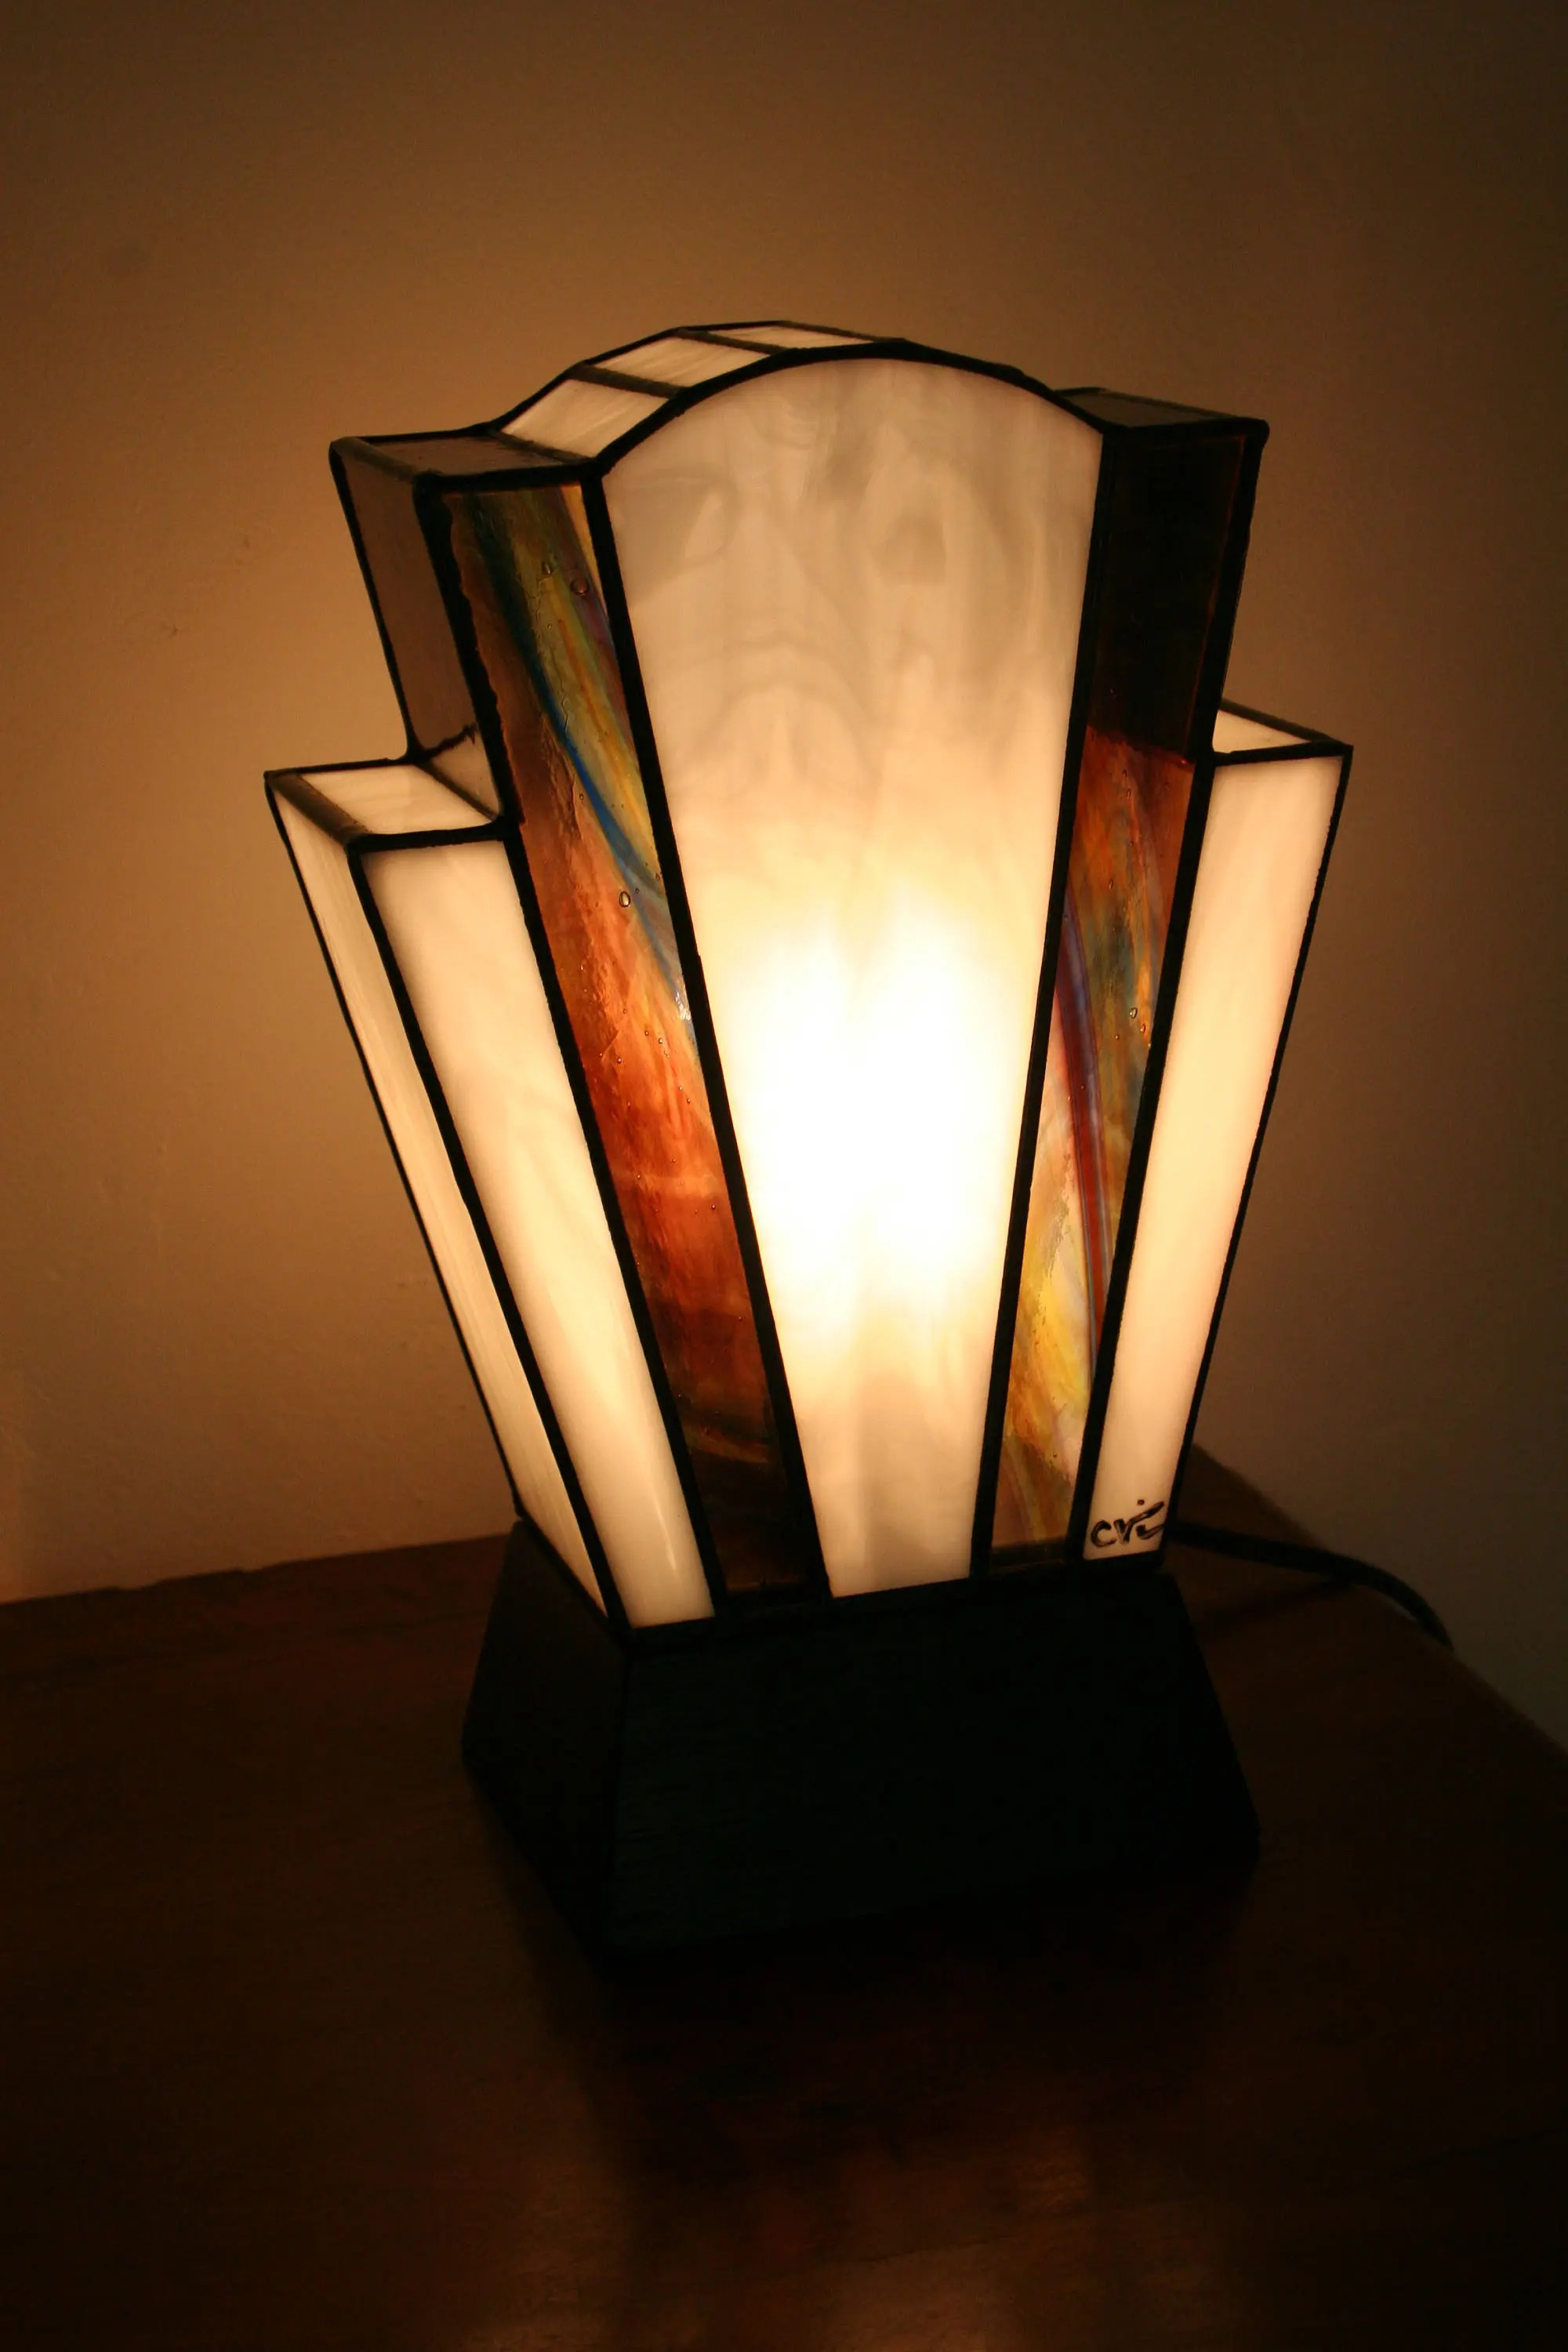 Glass Lamp Art Tiffany Lamp Art Deco Stained Glass Tiffany Lamp Table Nude